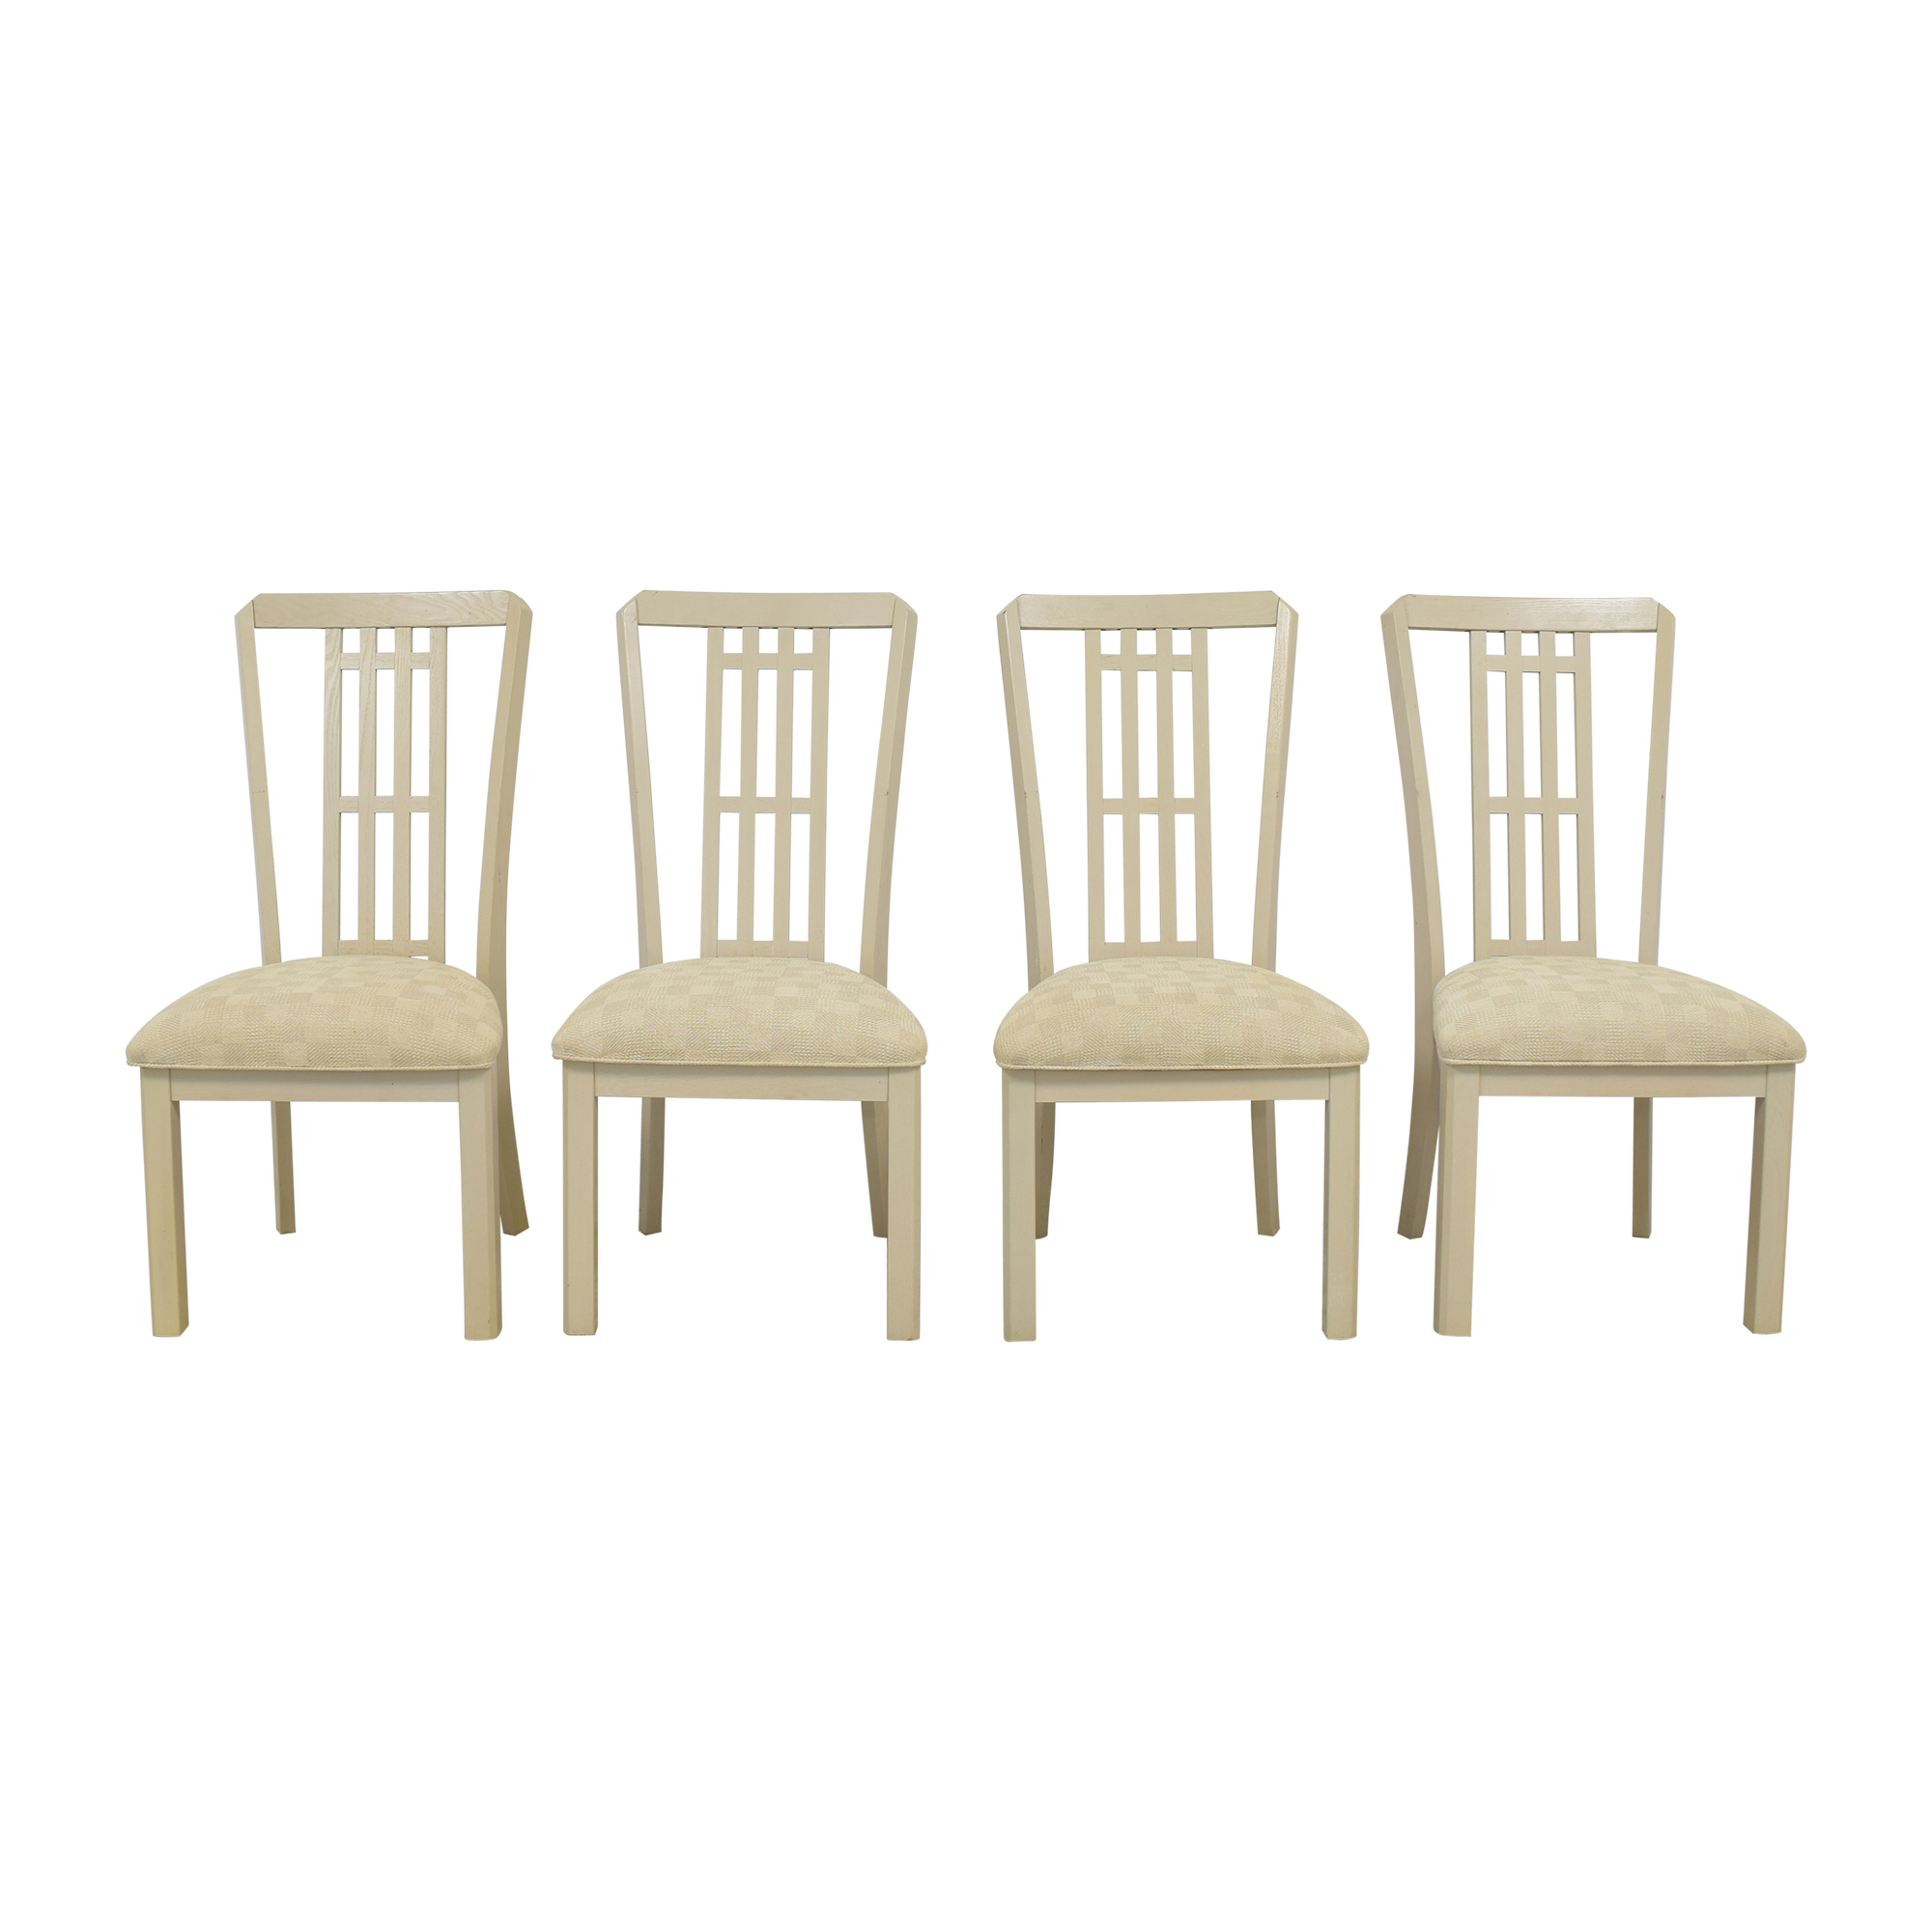 Master Design Furniture Master Design Furniture Upholstered Dining Chairs dimensions